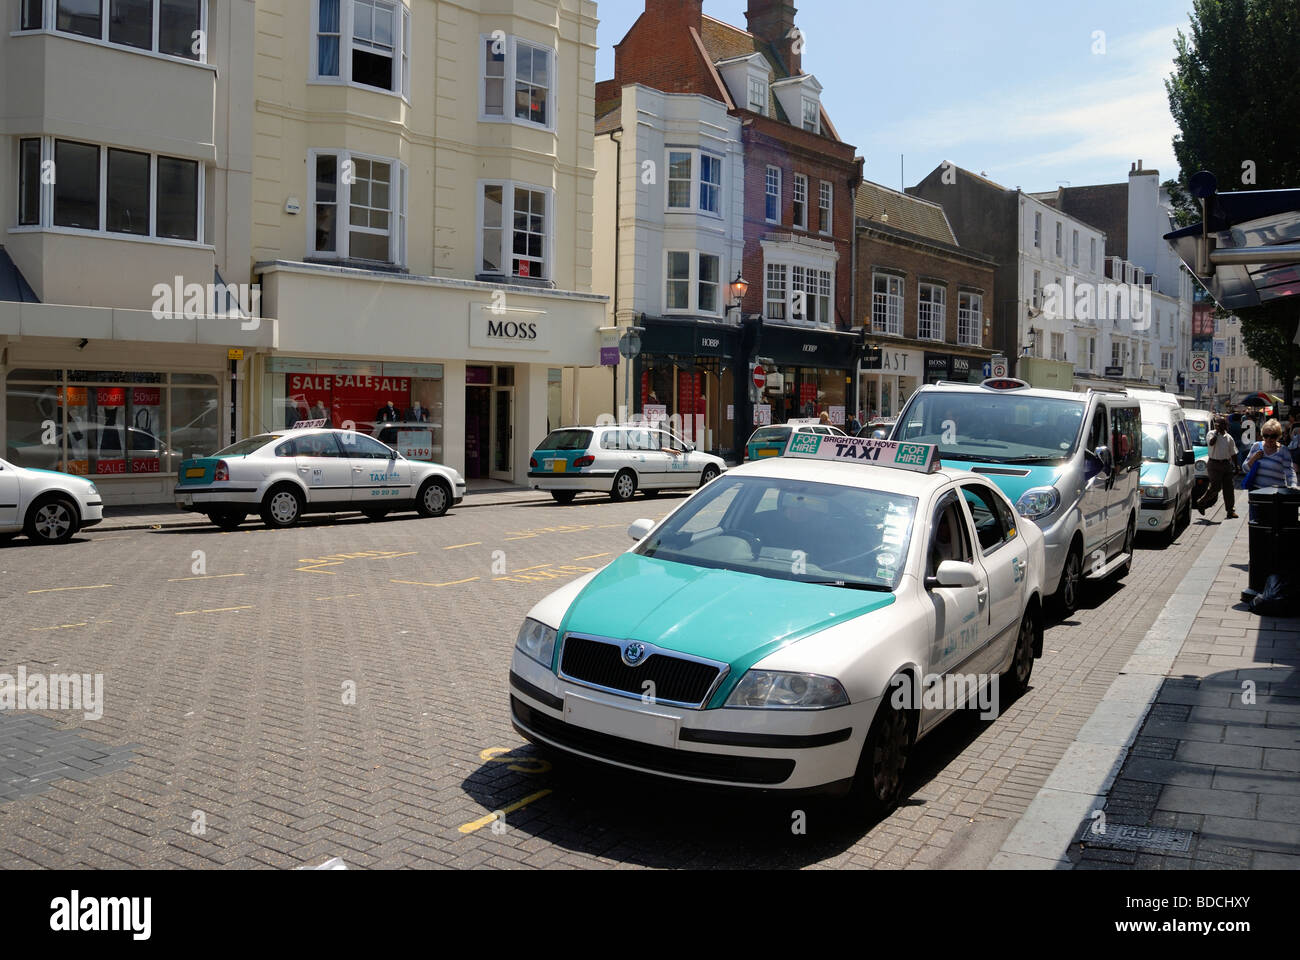 Taxis queuing for a fare in central Brighton - Stock Image